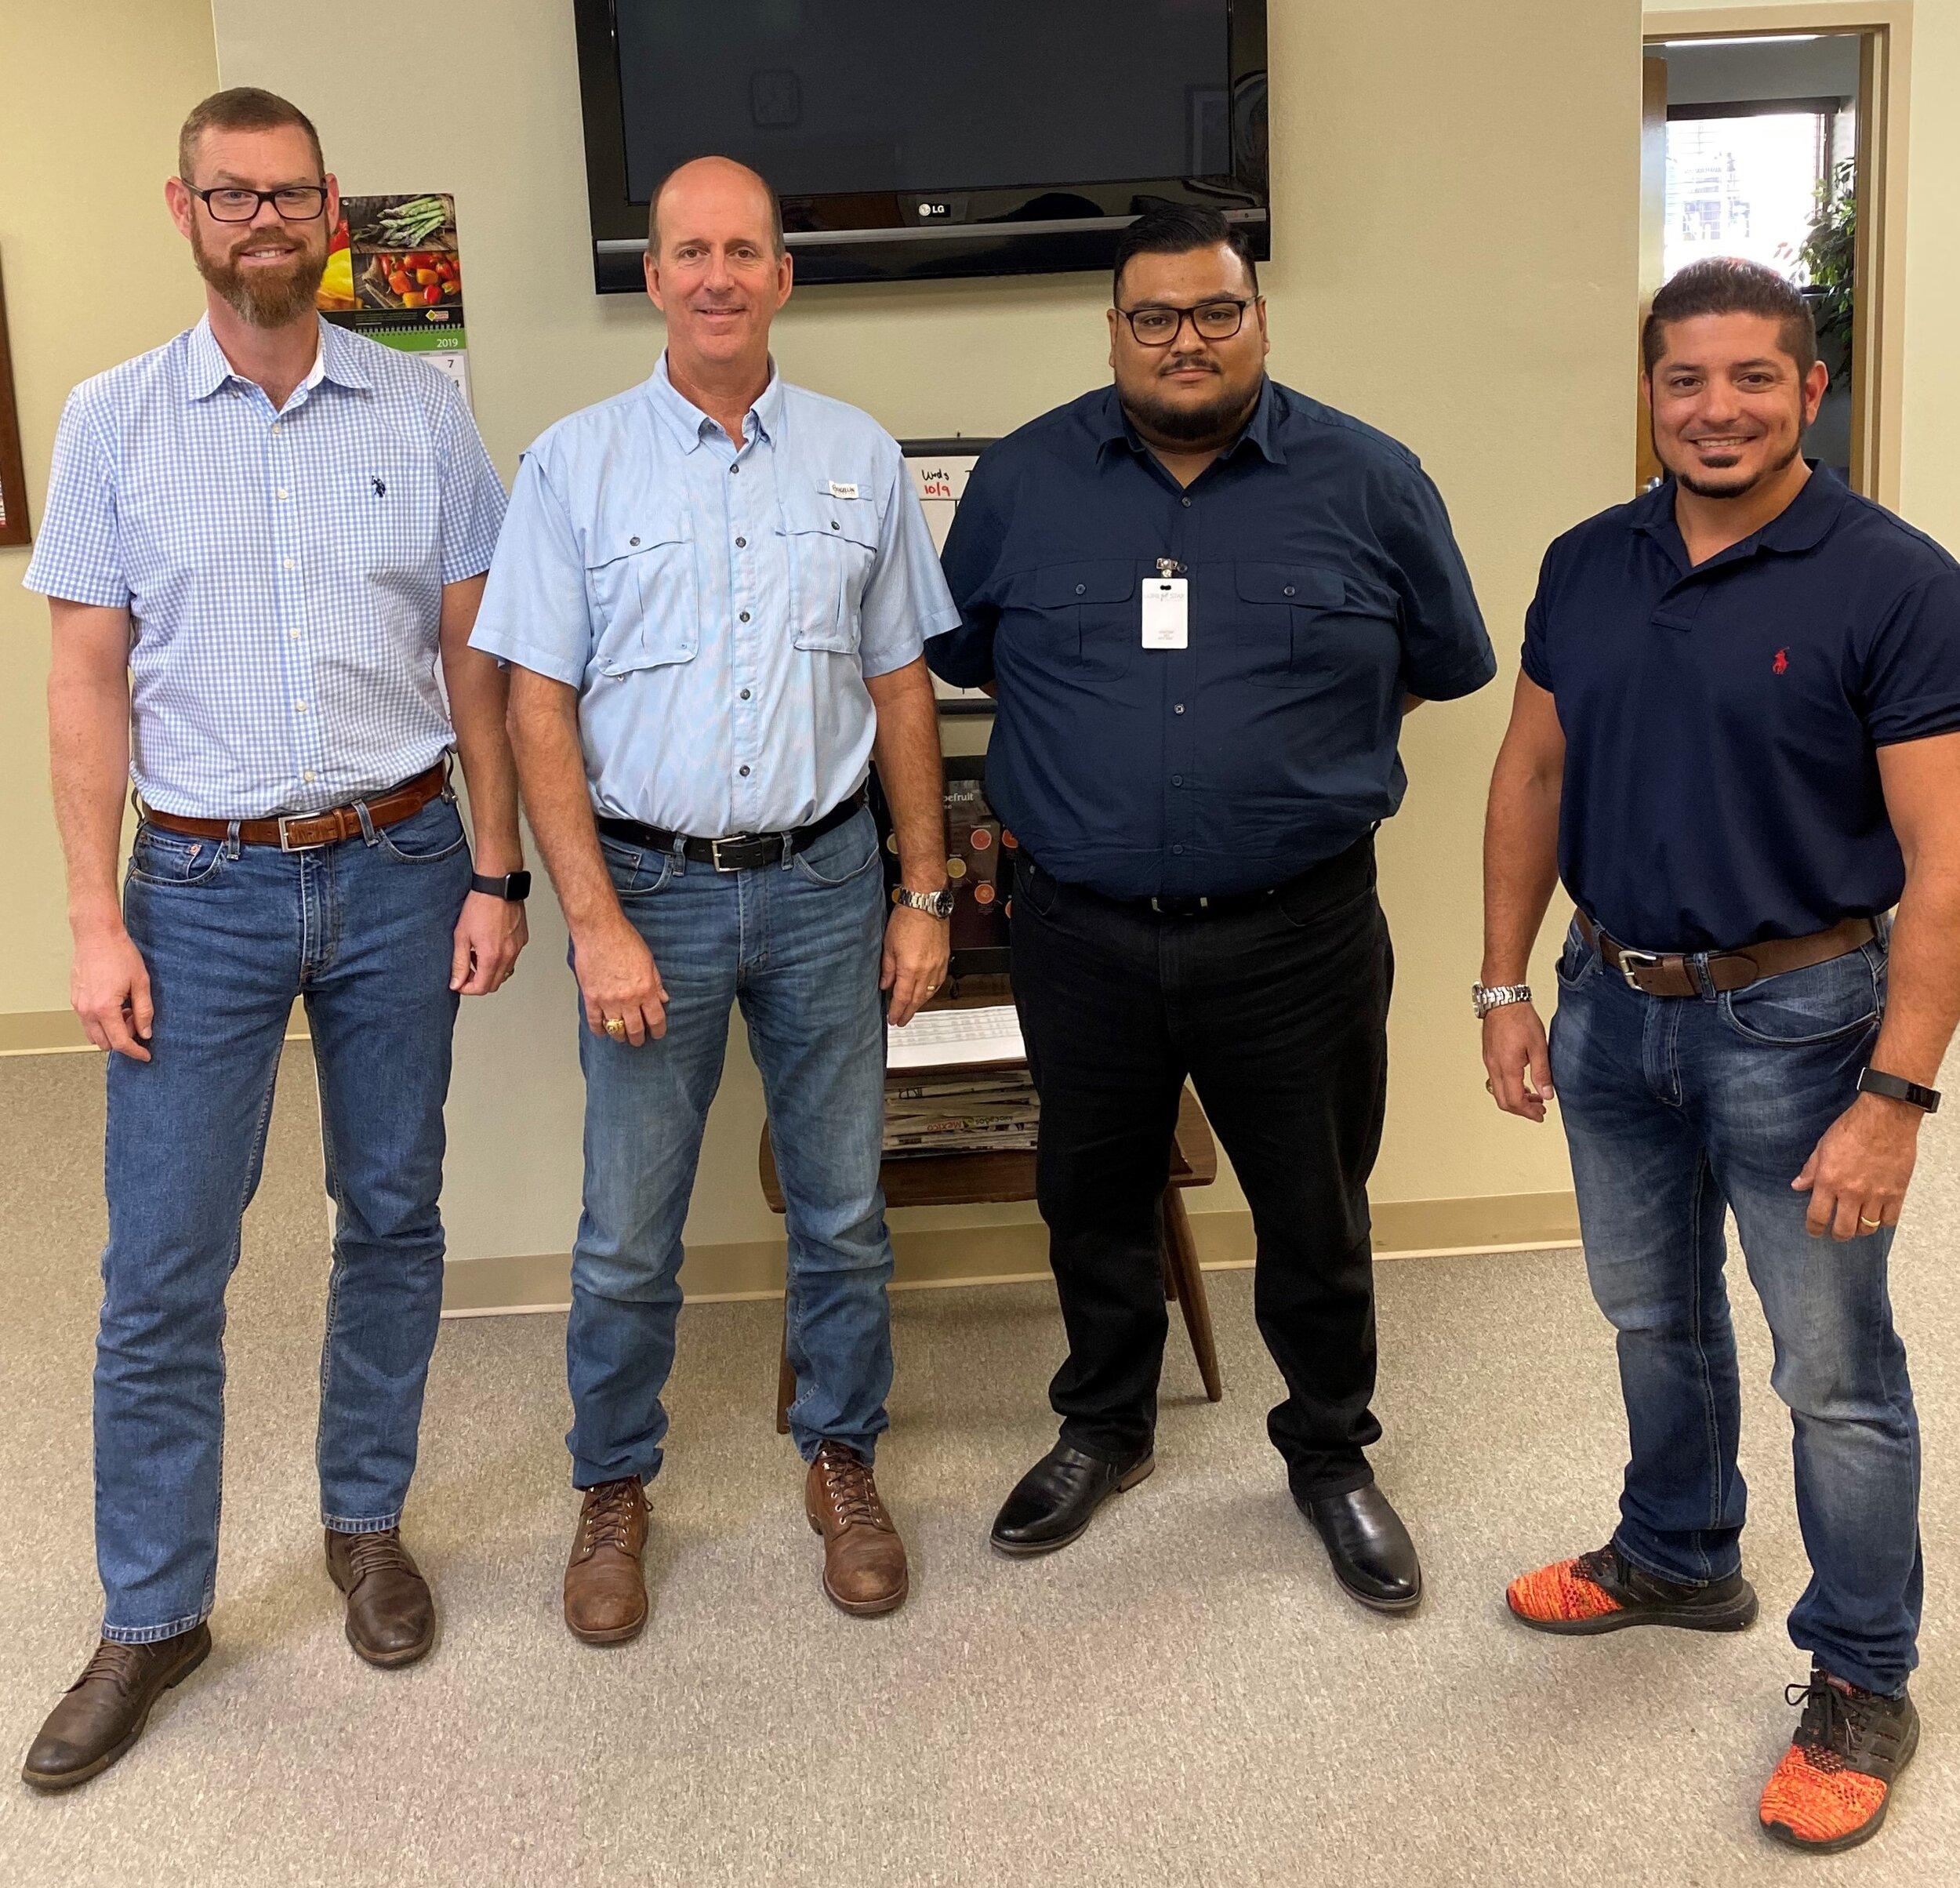 Pictured above is Paul Stofberg (CEO - Prophet North America), Chris Eddy (Assistant Operations Manager - Lone Star Citrus Growers), Giovanny Ramirez (Implementation Consultant - Prophet North America) and TJ Flowers (VP Operations & Sales - Lone Star Citrus Growers).